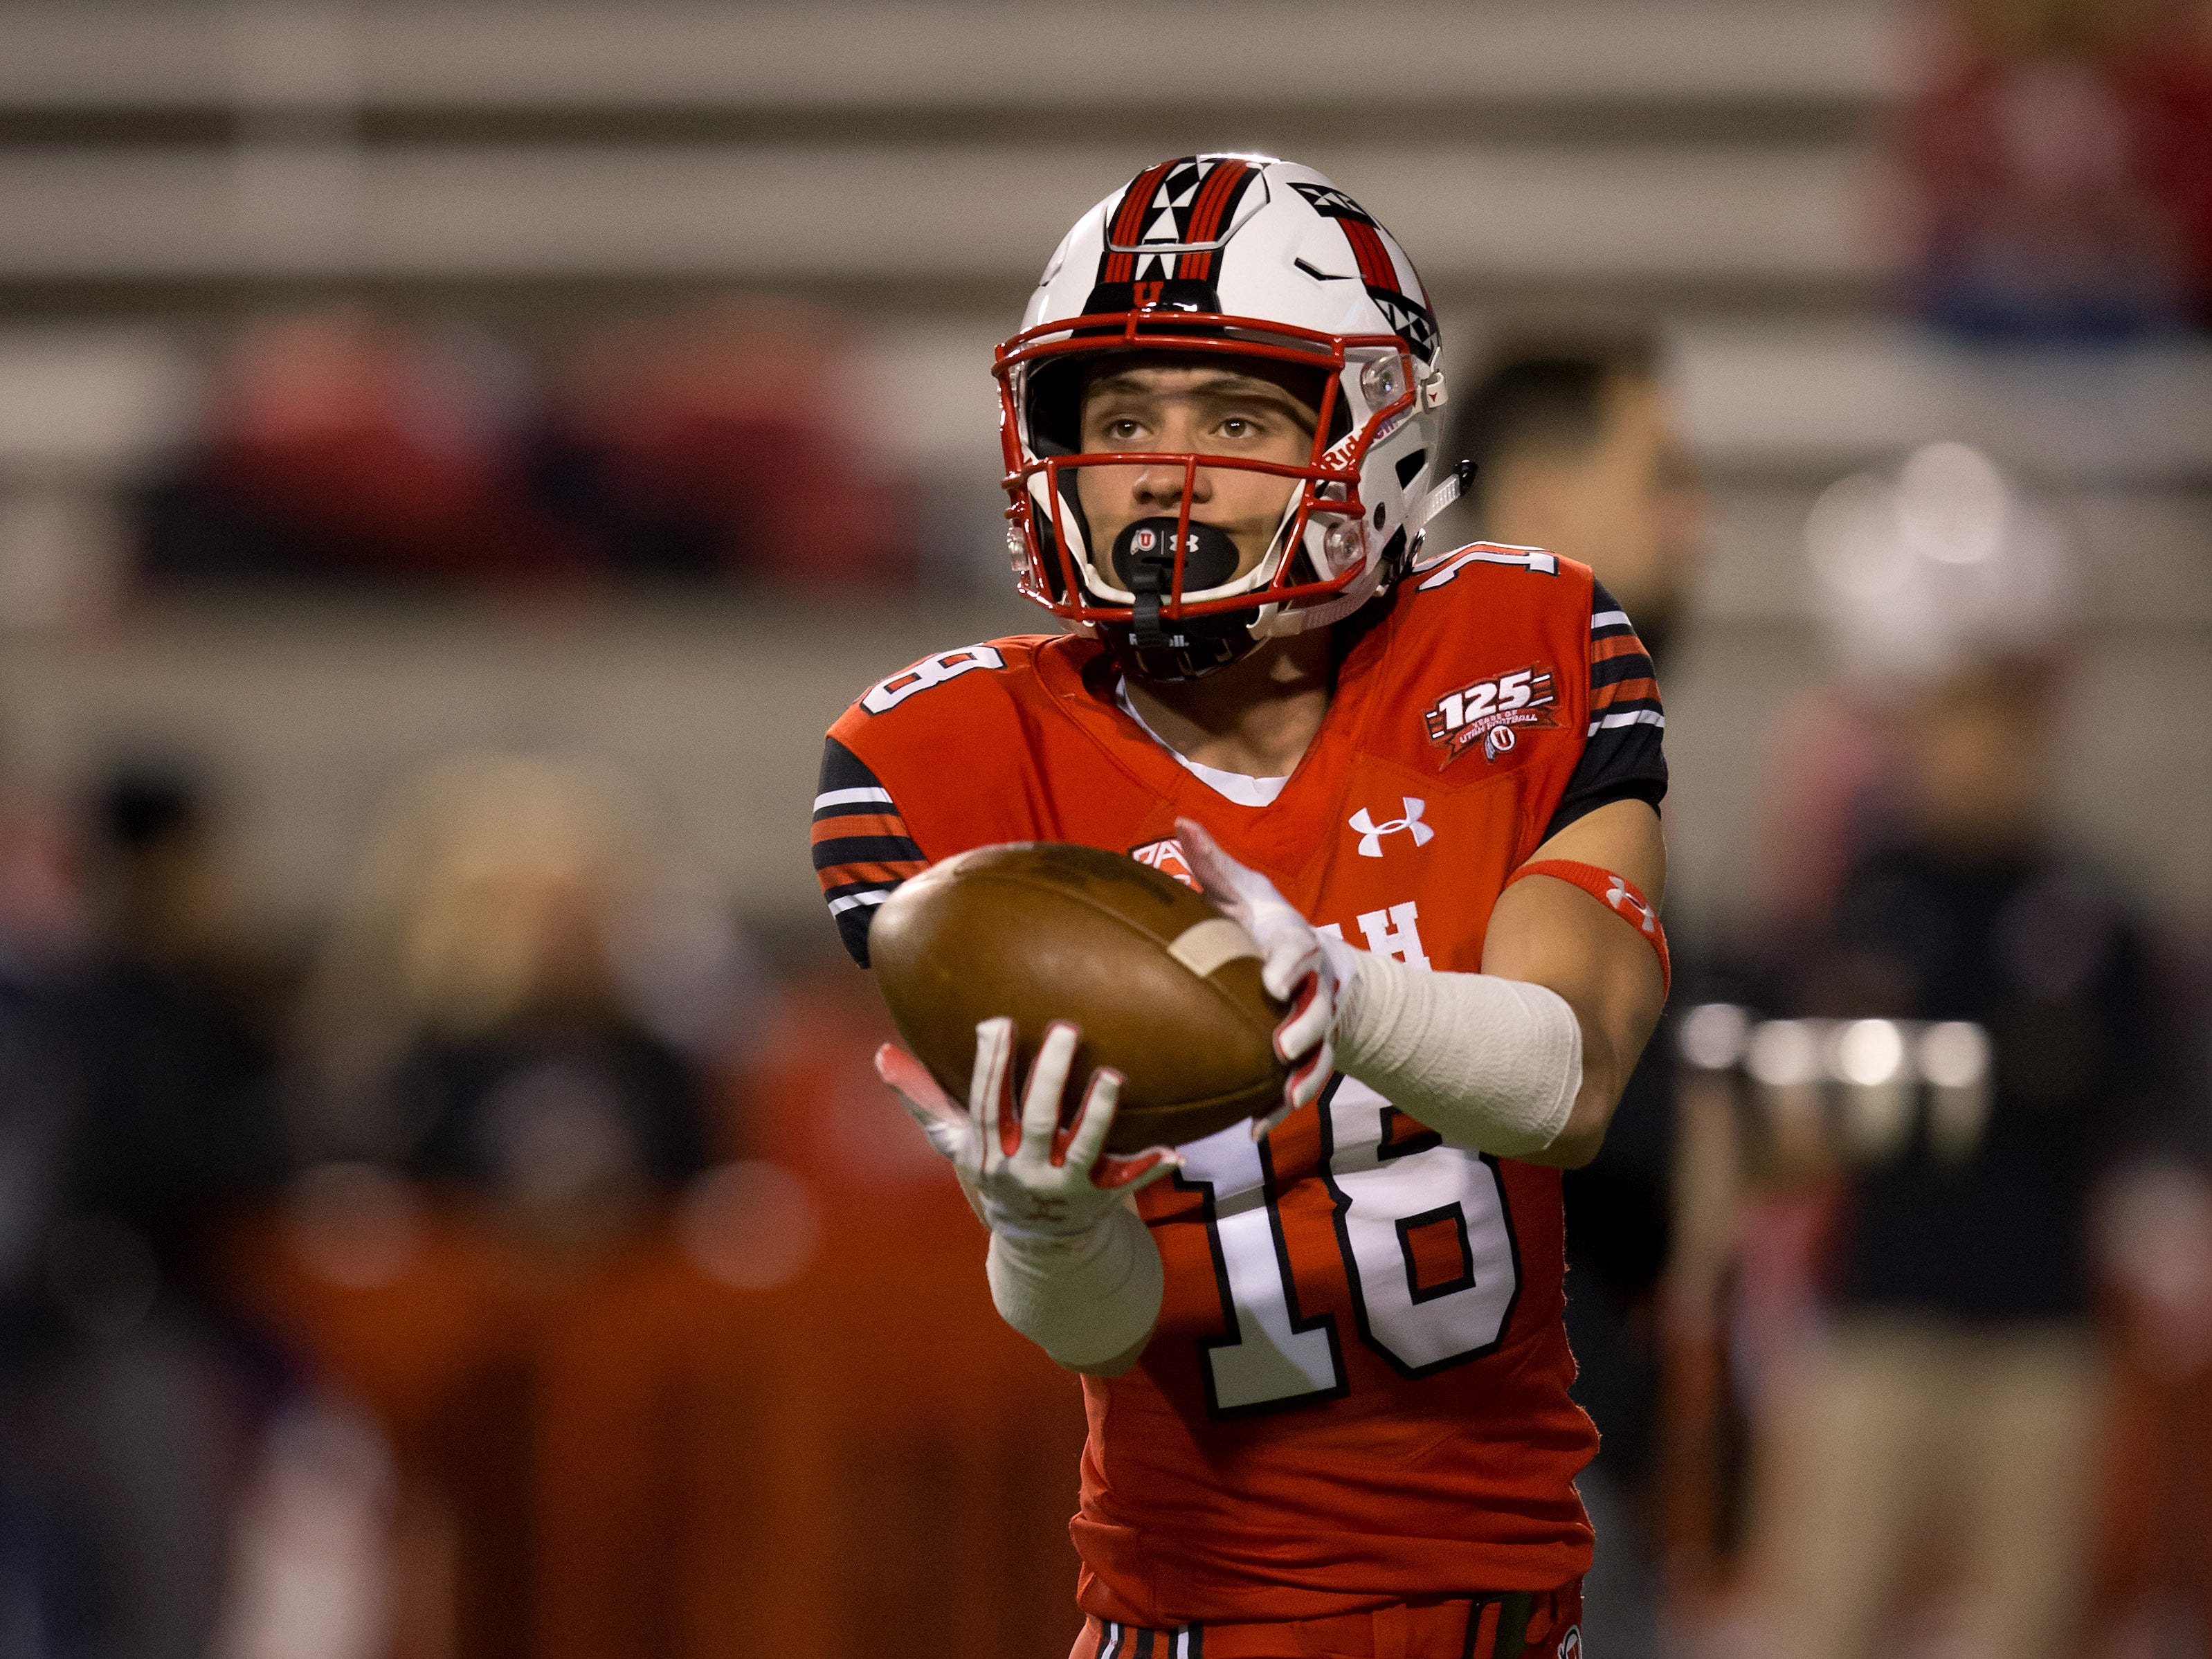 Oct 12, 2018; Salt Lake City, UT, USA; Utah Utes wide receiver Britain Covey (18) warms up prior to the game against the Arizona Wildcats at Rice-Eccles Stadium.